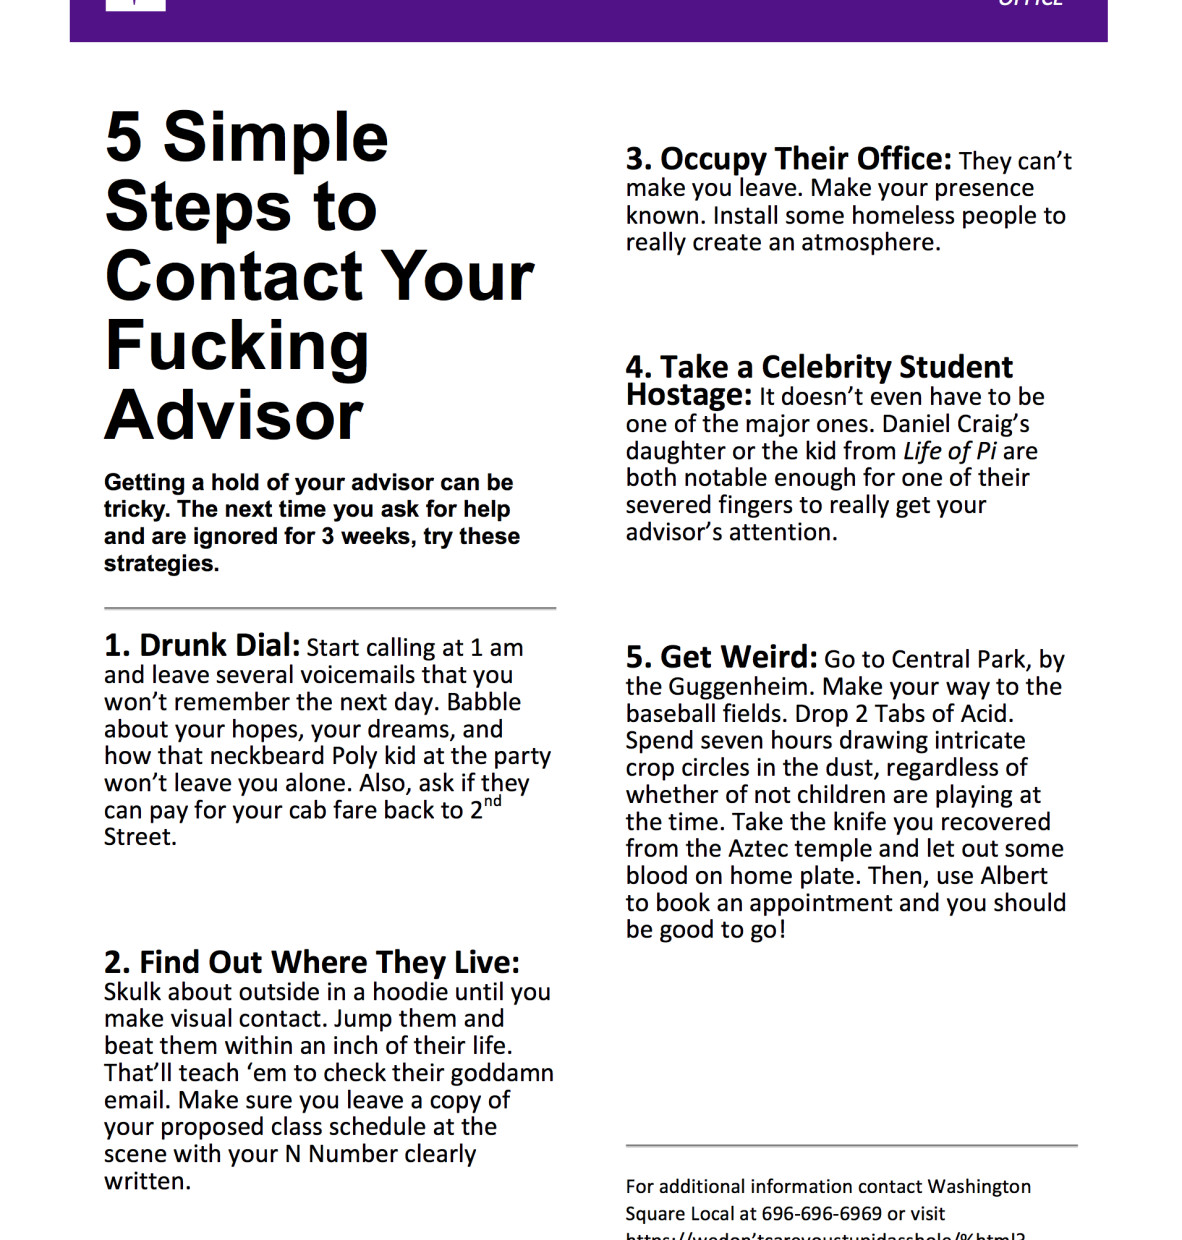 5 Simple Steps To Contact Your Fucking Advisor